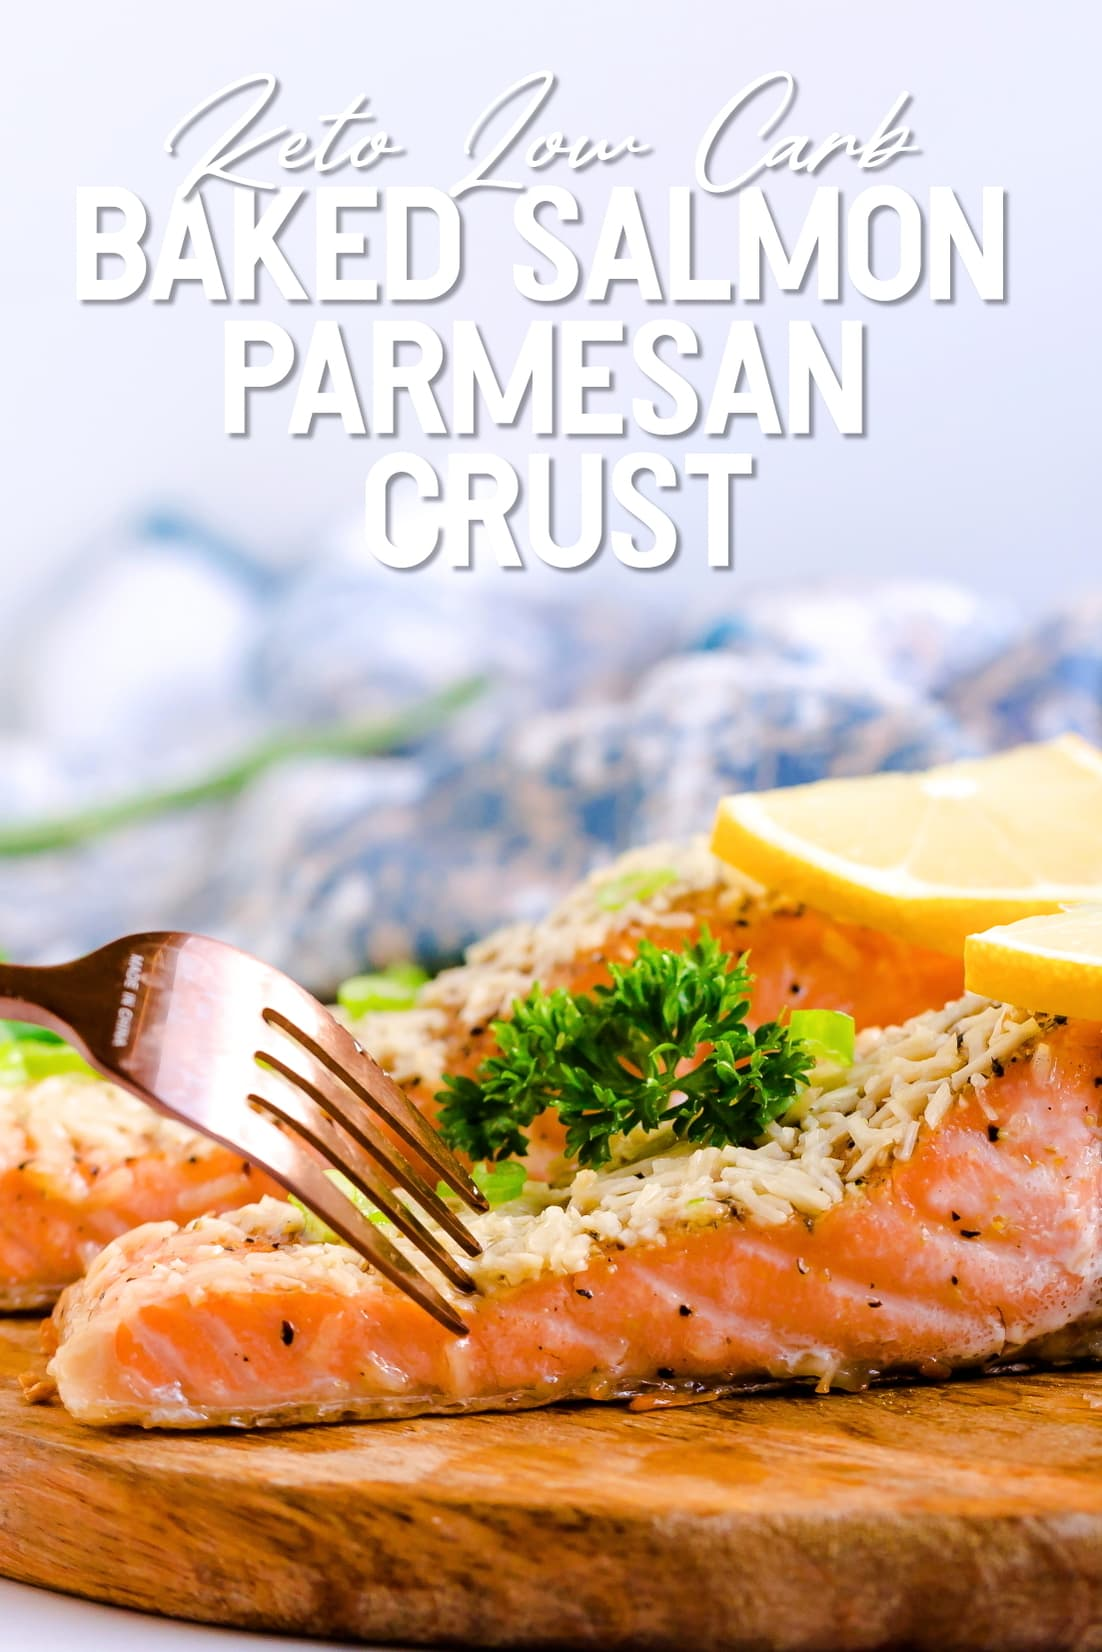 Baked Salmon with Parmesan Crust being cut into with a golden fork